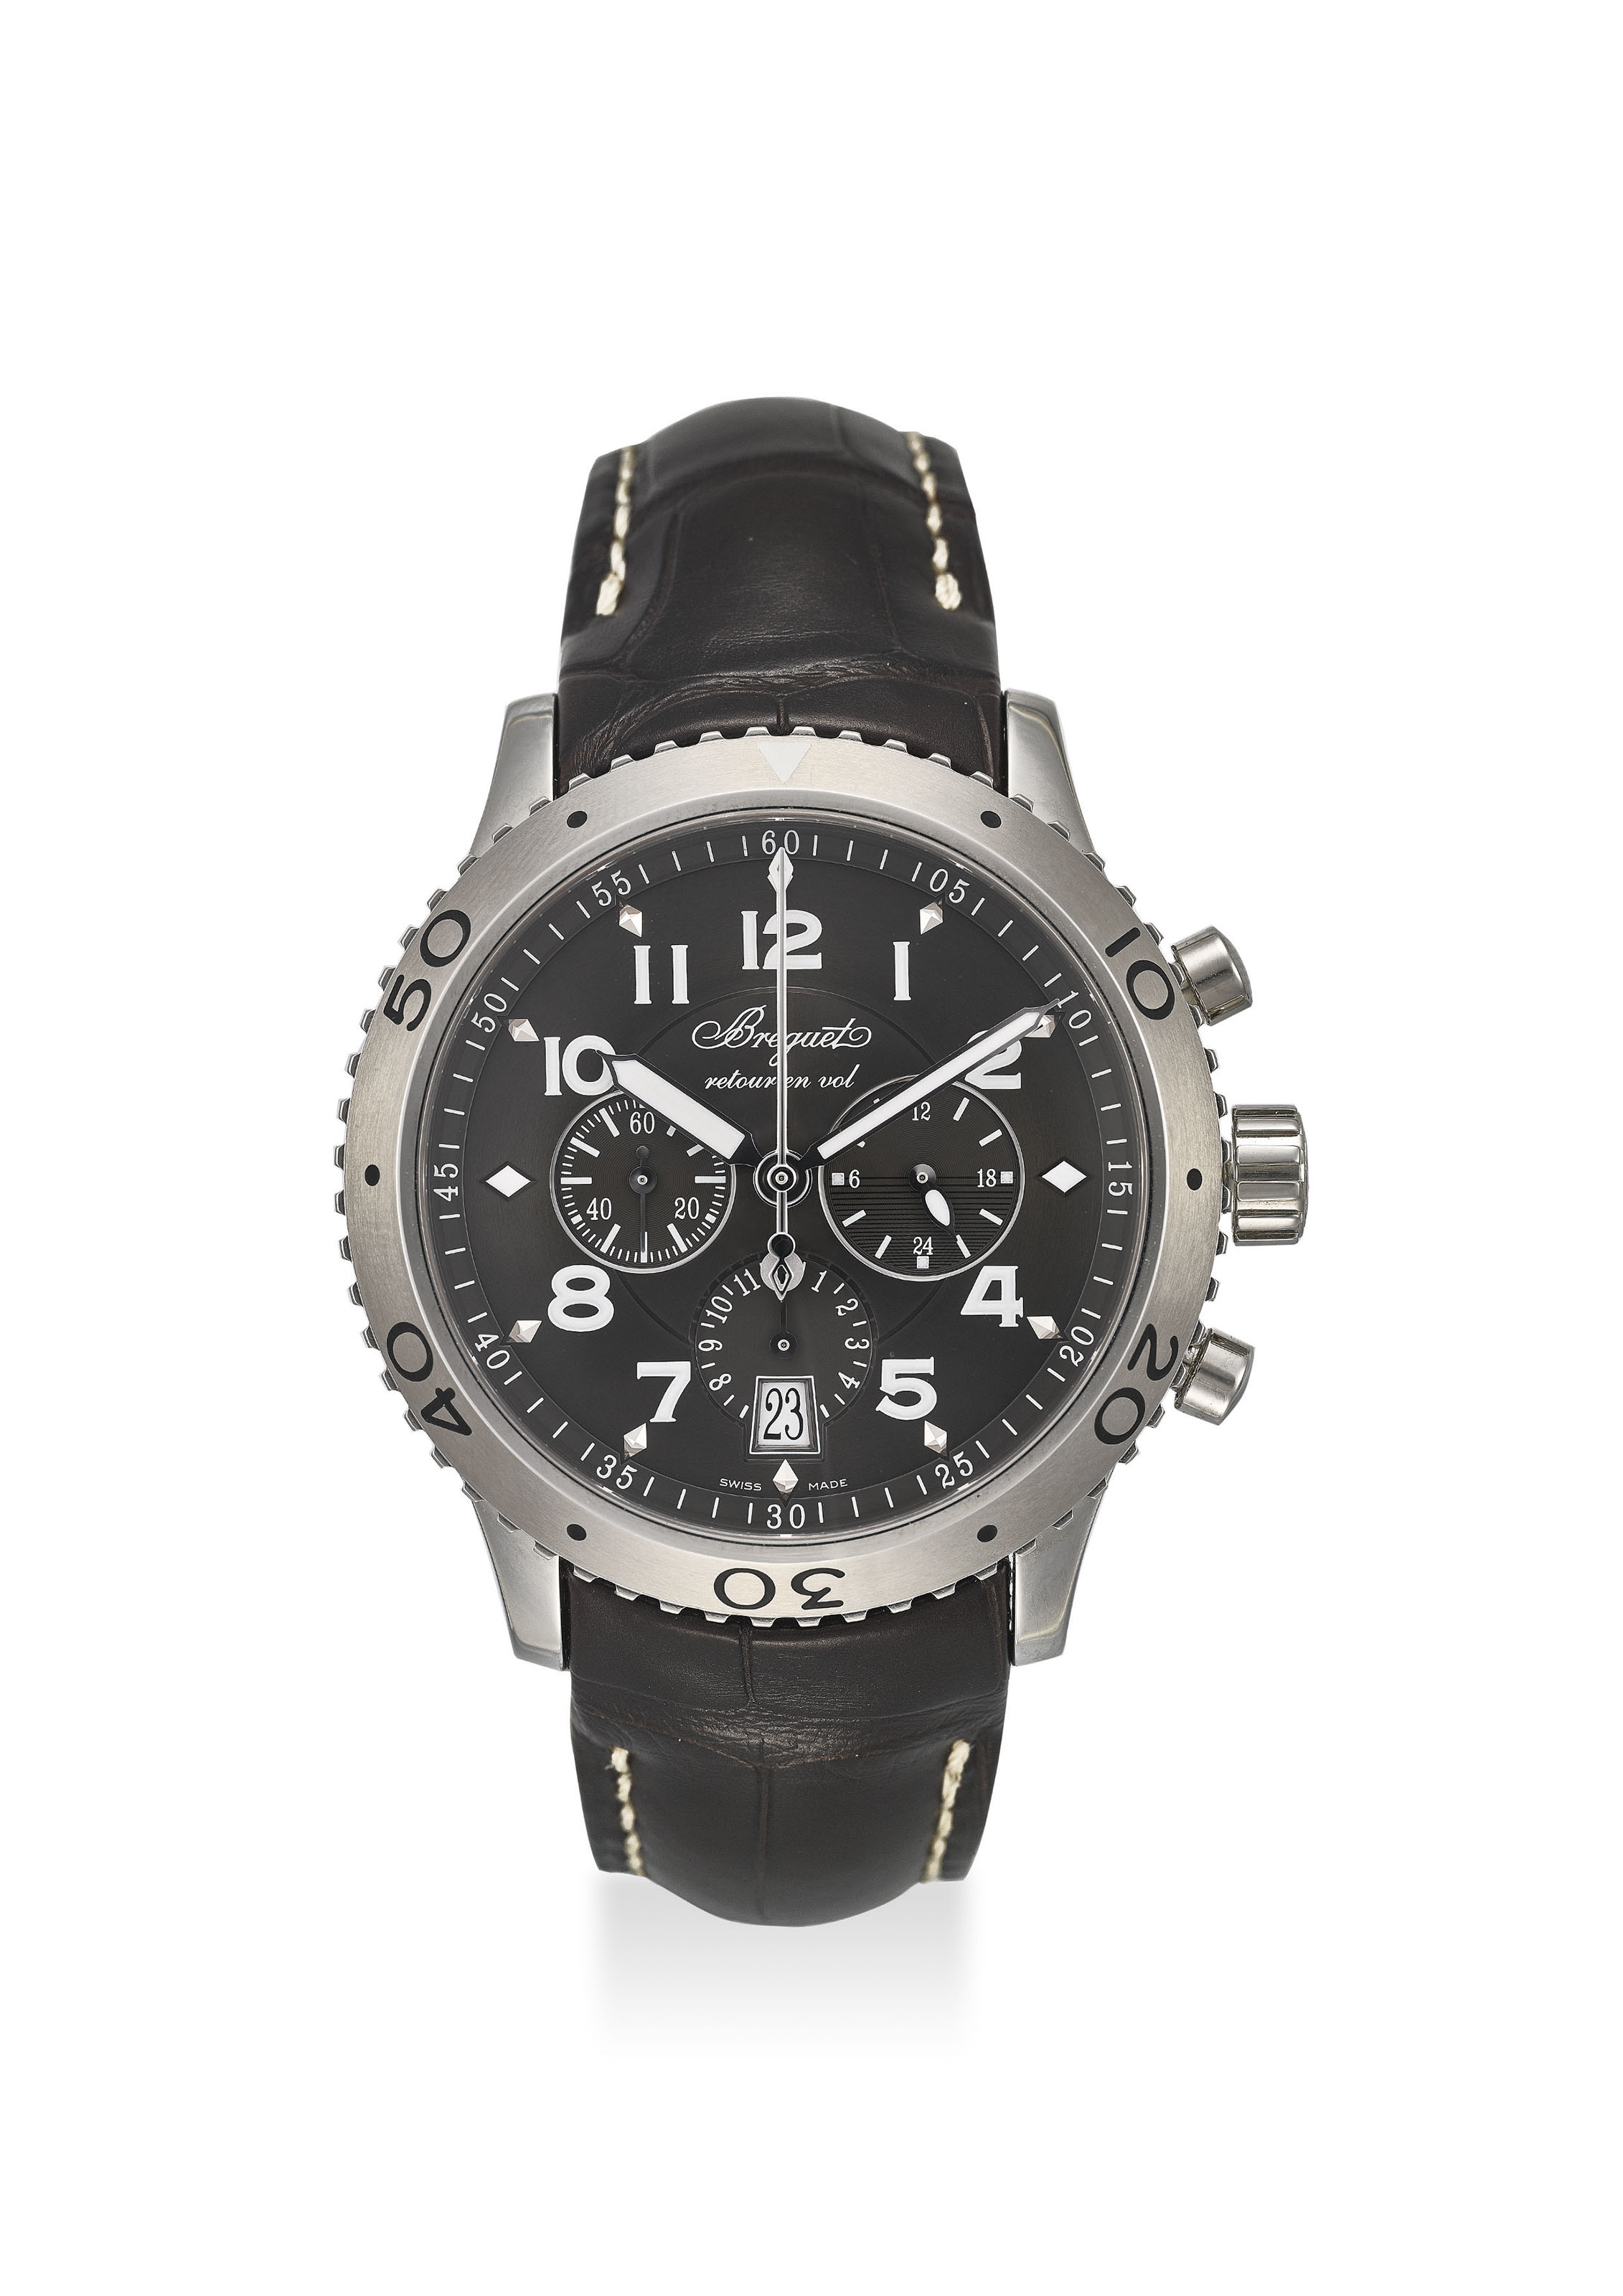 BREGUET AN EXTREMELY FINE STAINLESS STEEL AUTOMATIC CHRONOGR...